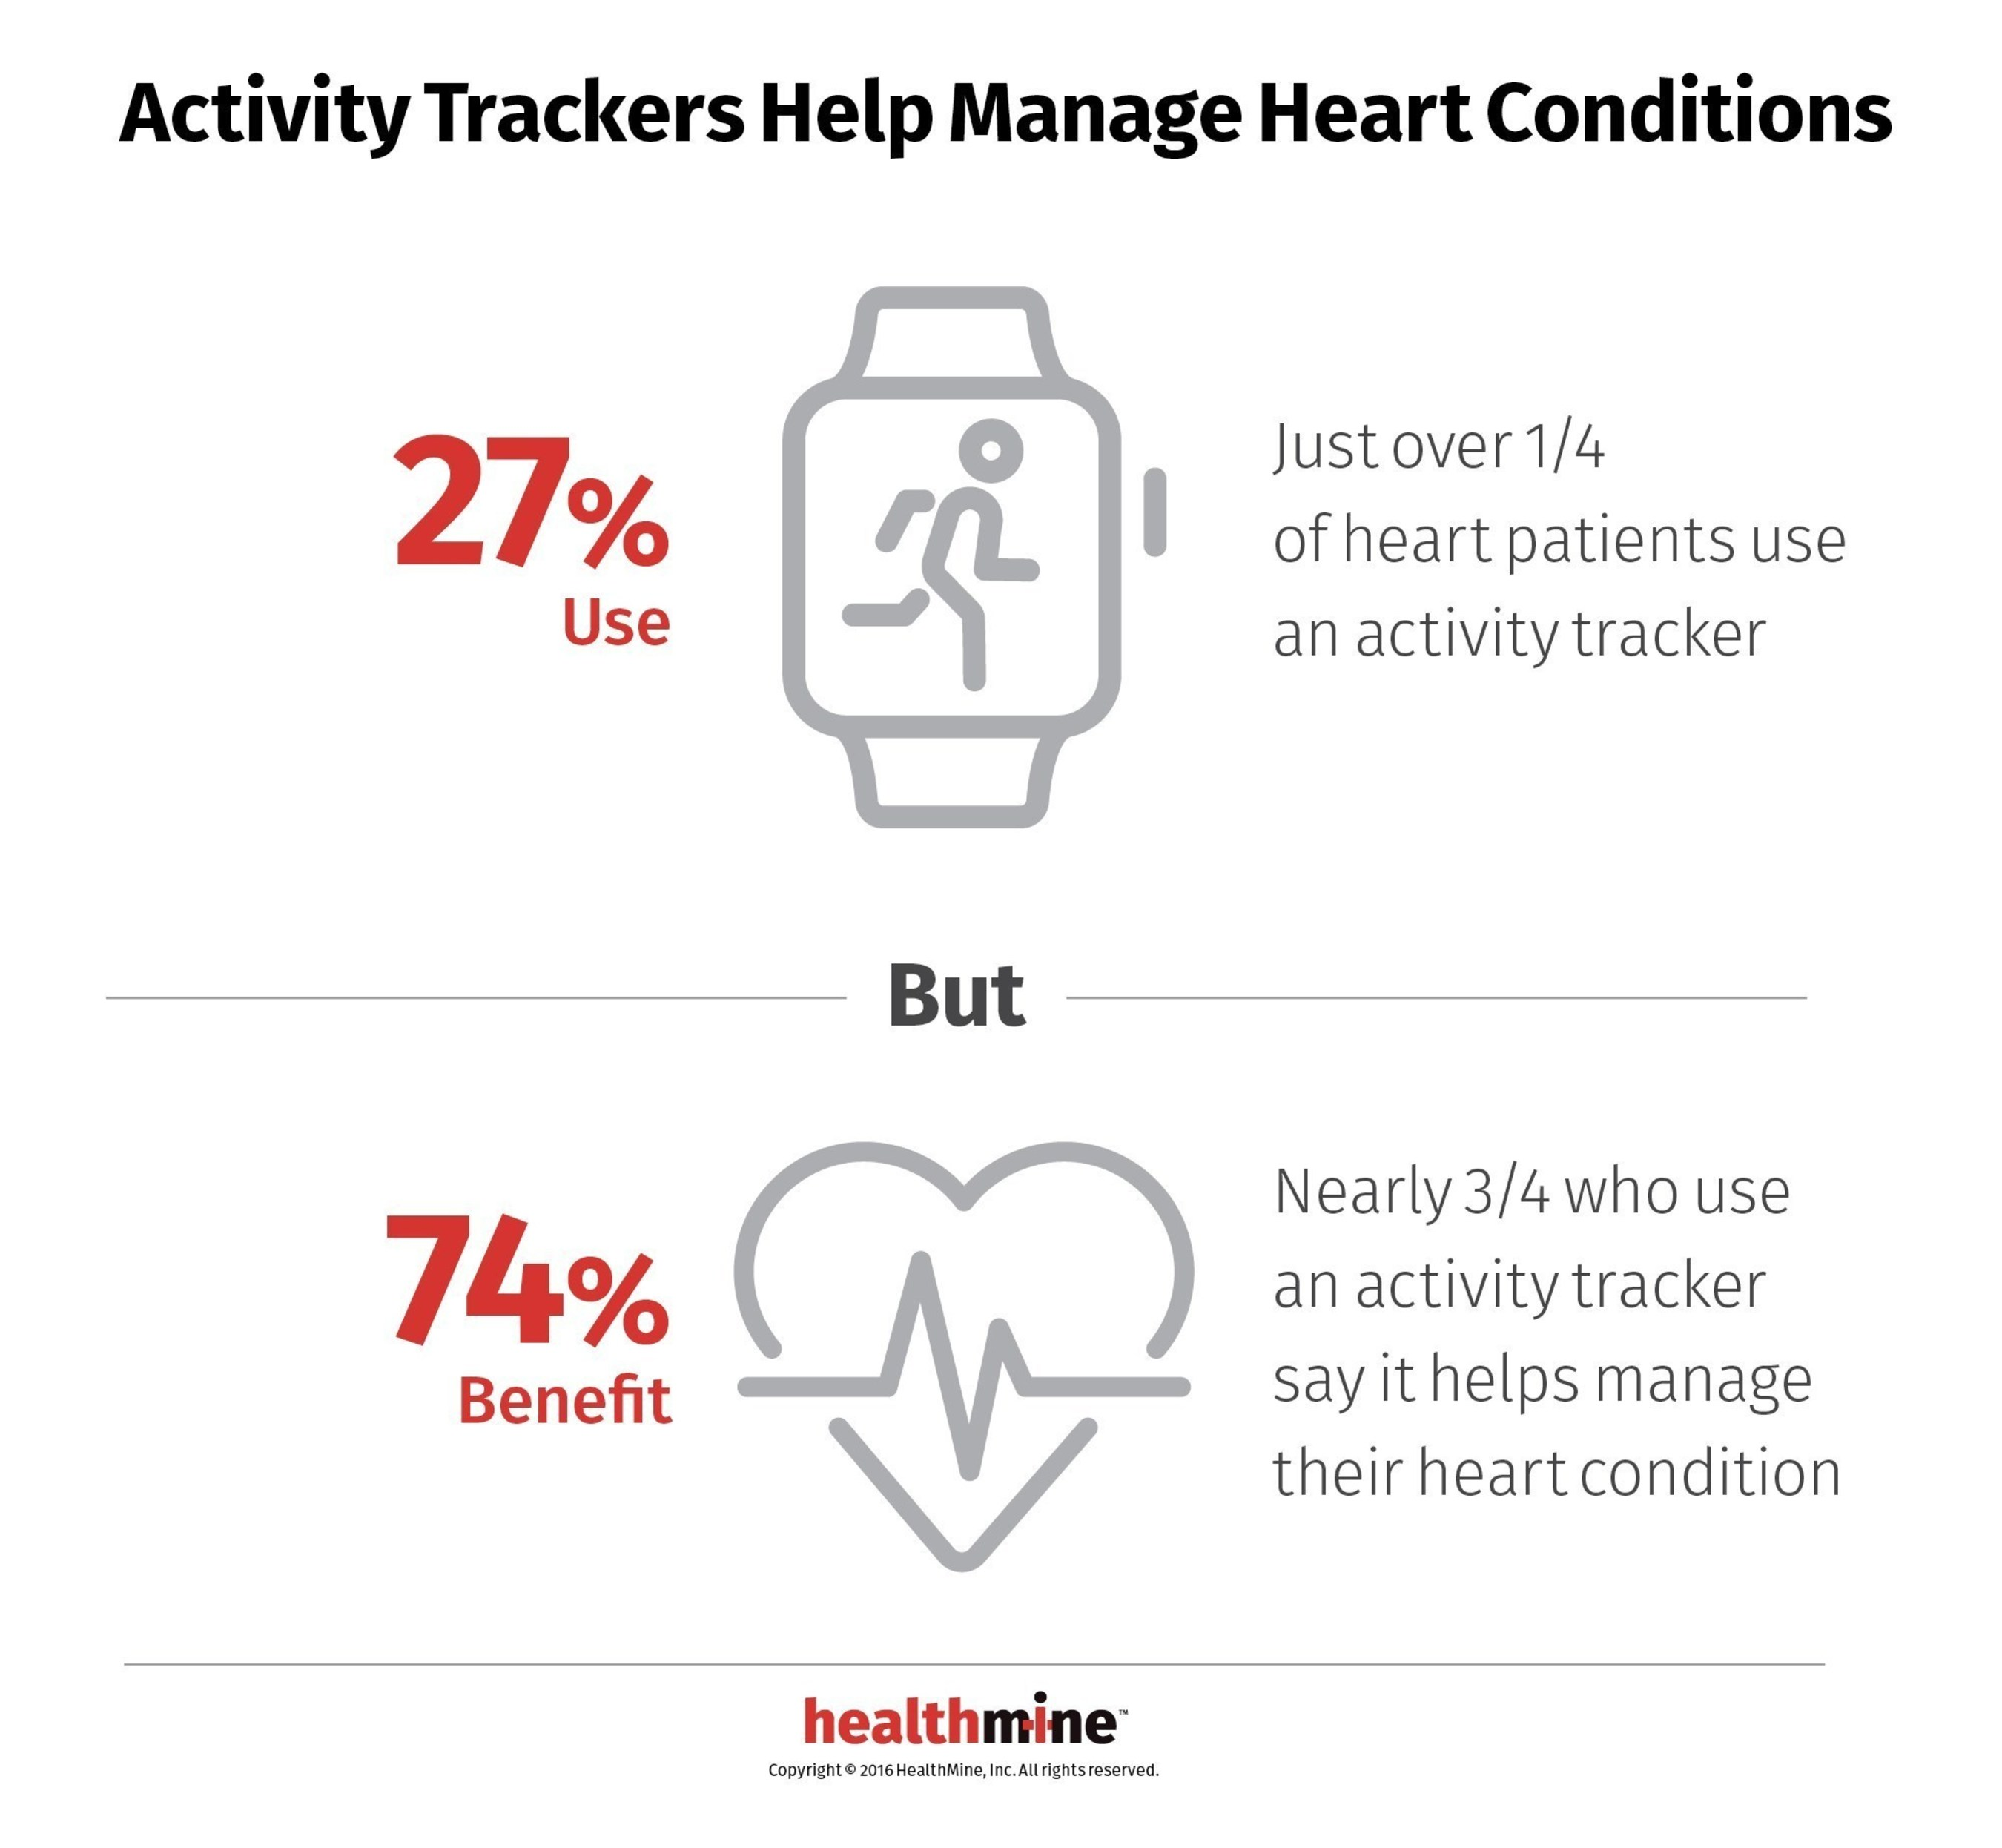 74% of Heart Patients Say Activity Trackers Help, But Only 27% Use Them, Found HealthMine Survey